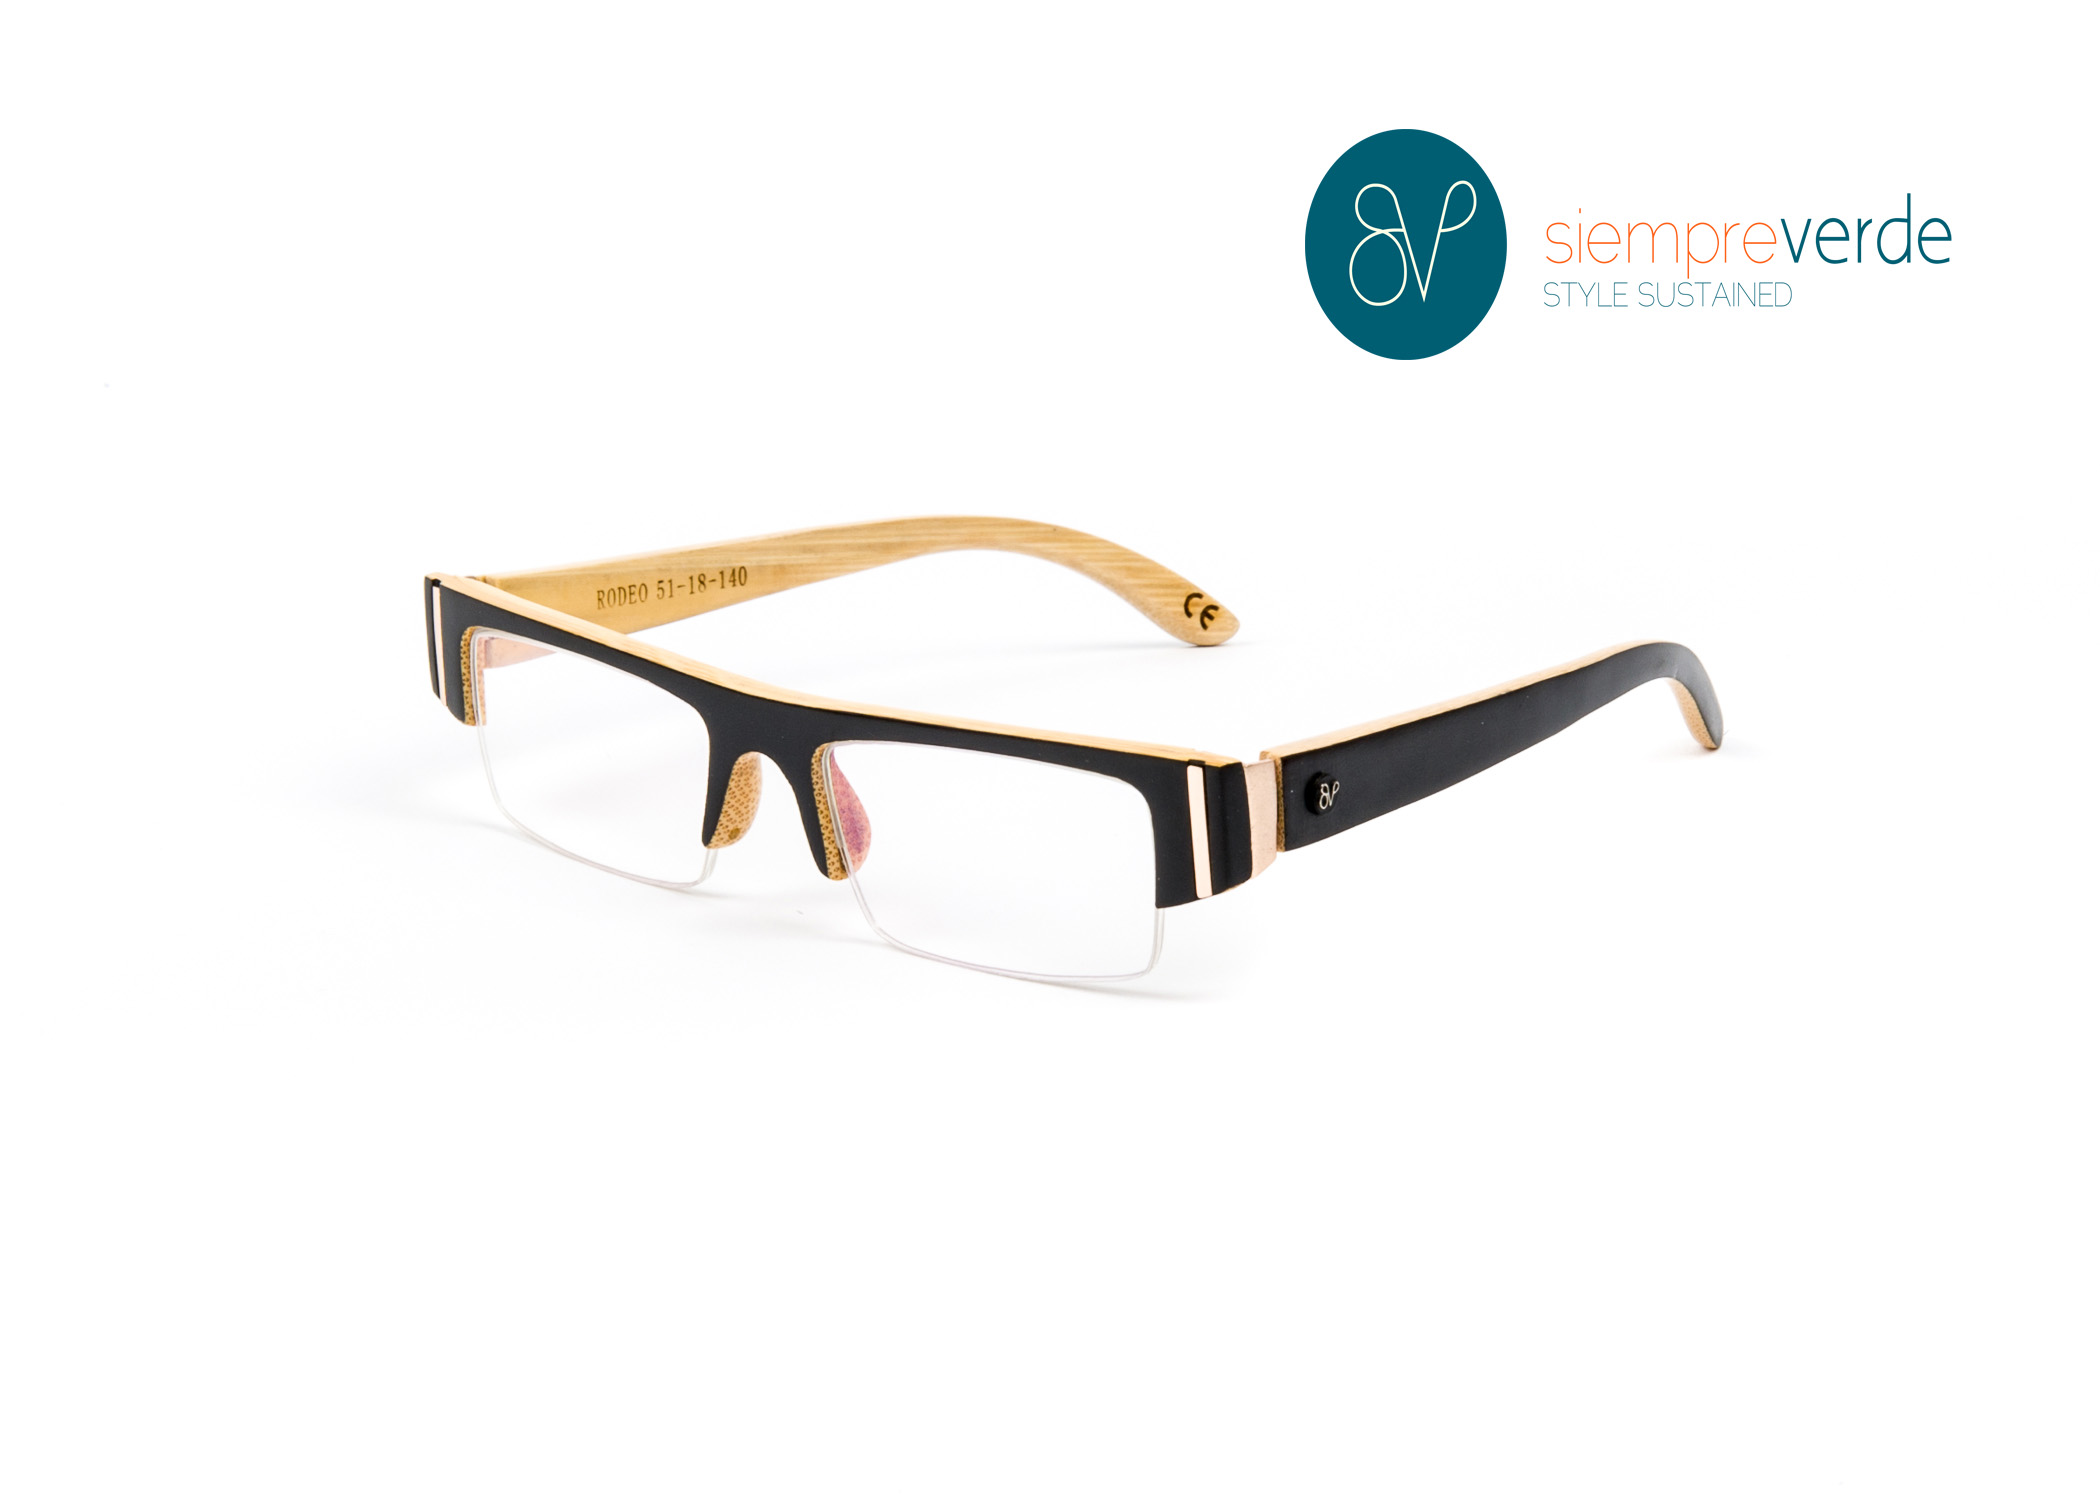 71133cef066 Siempre Verde Launches the Madera Collection  Wood Eyewear with Style